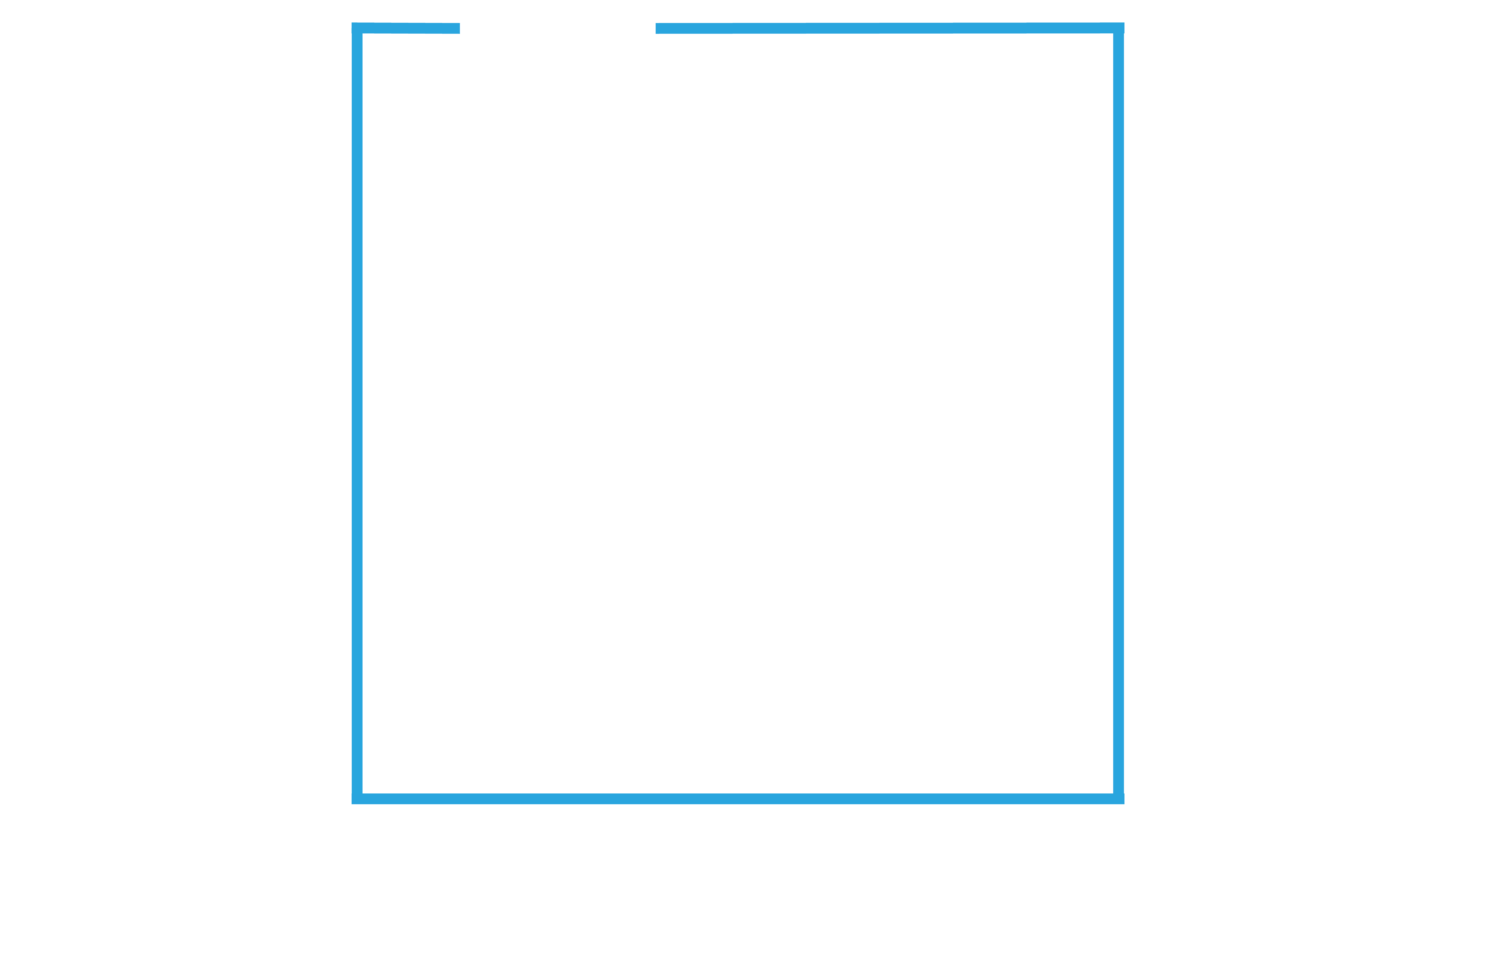 enVISIONed environment